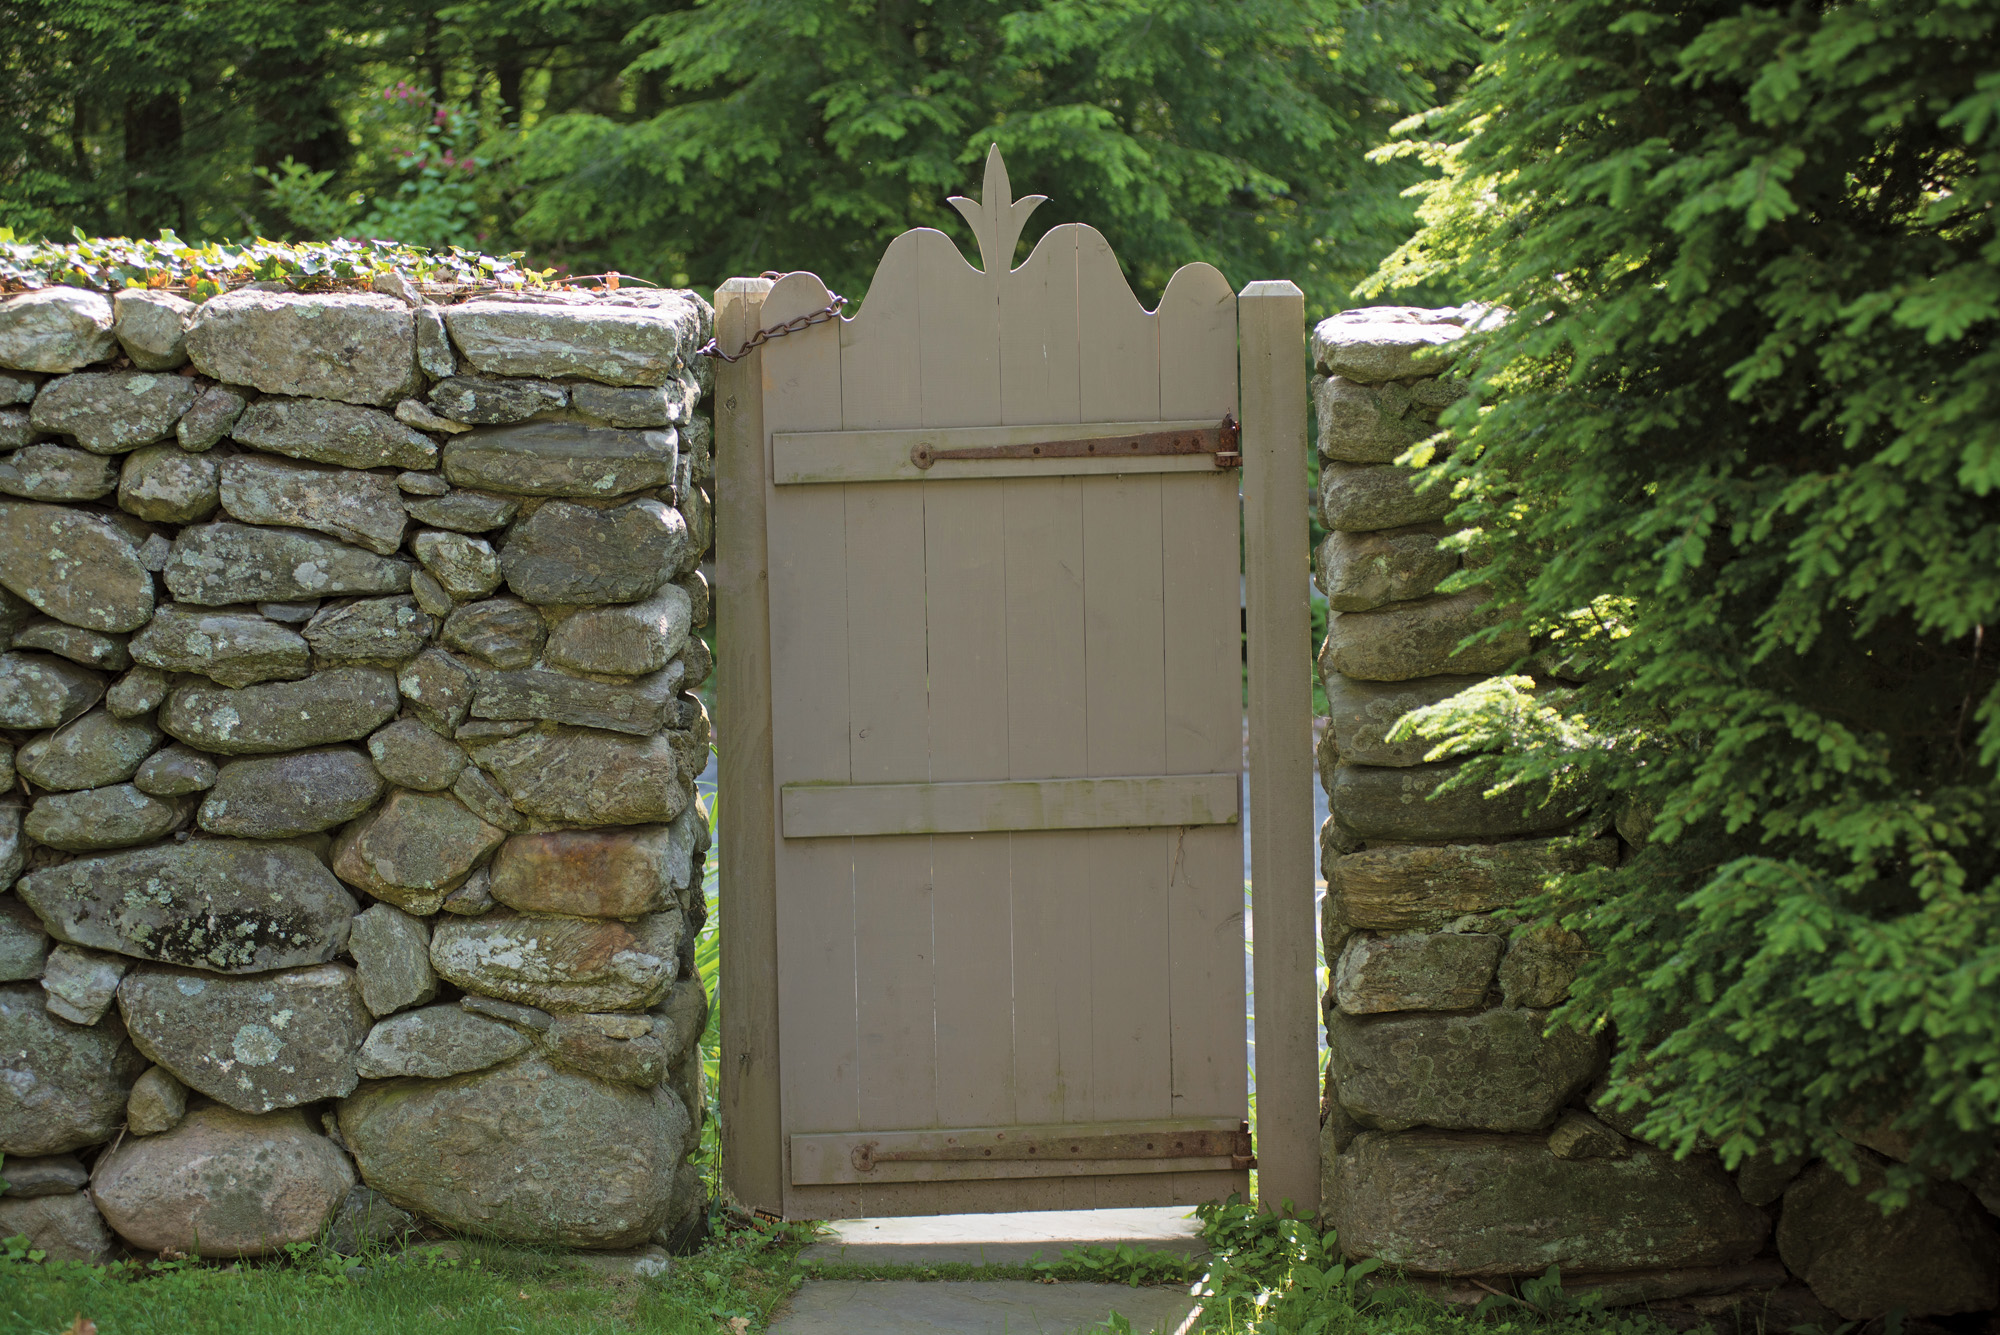 A wooden gate gives access to the stone-walled enclosure.